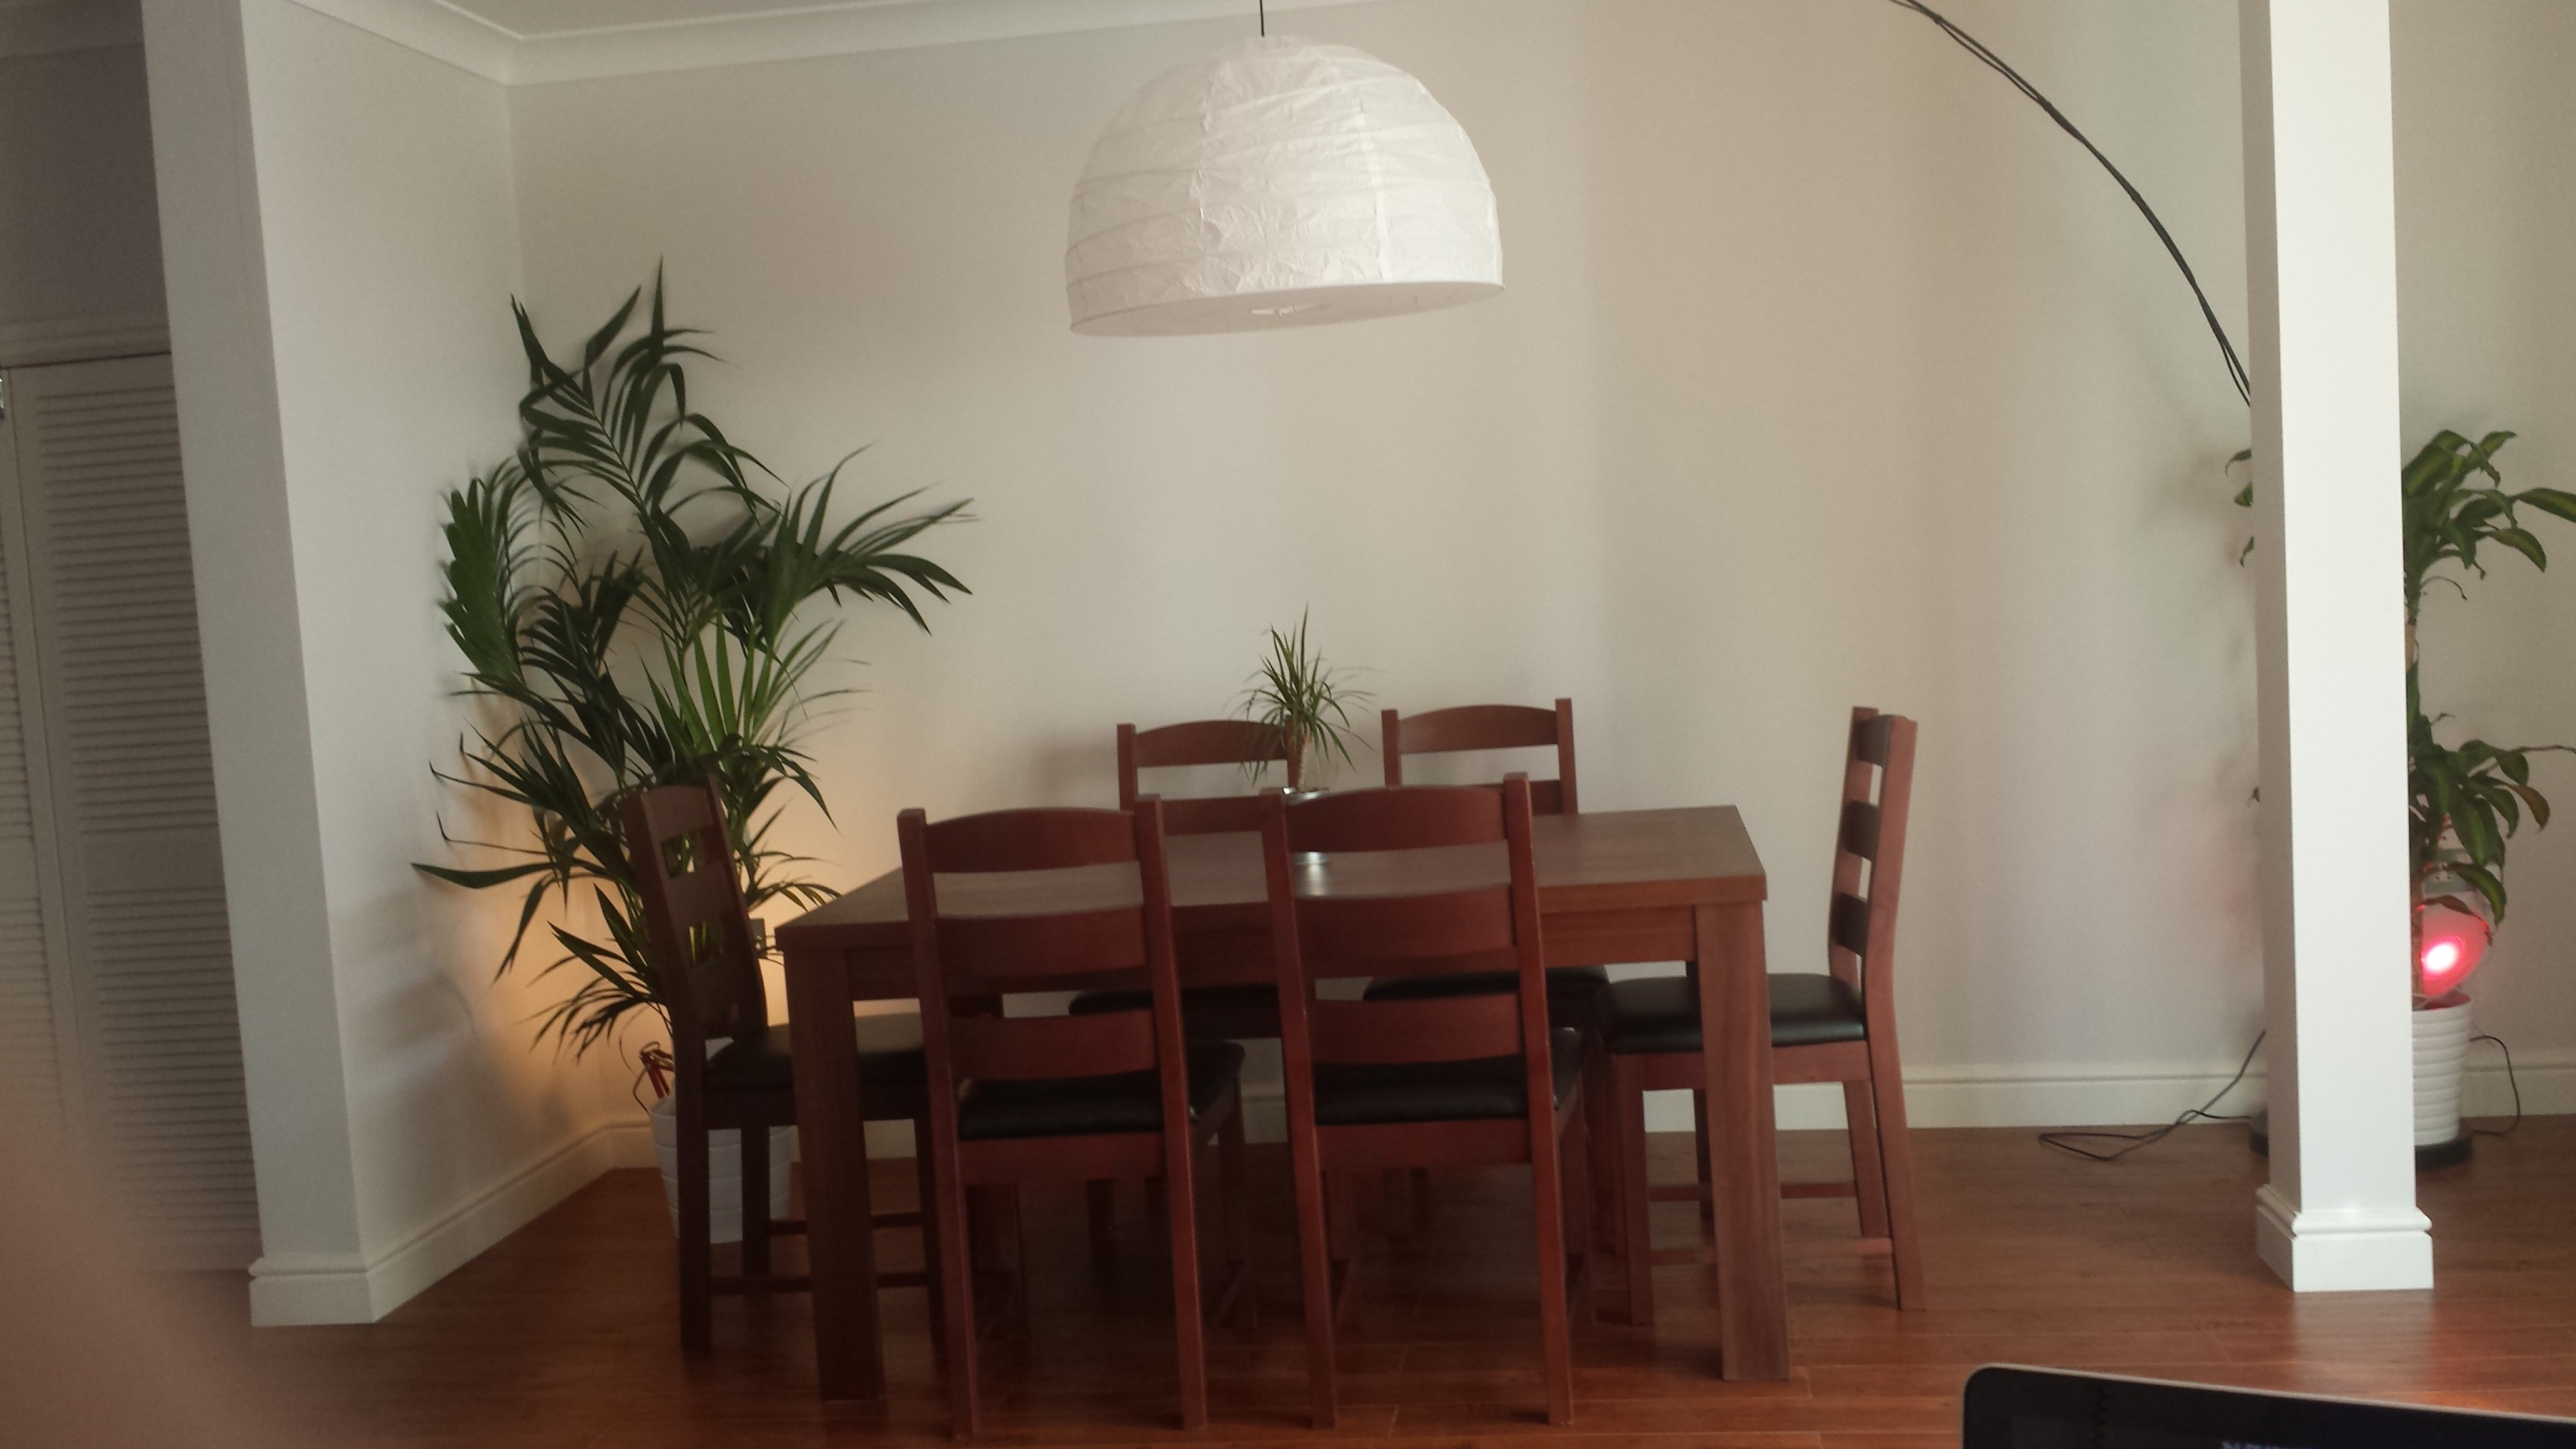 Private 1 Bedroom Flat To Rent In London Bed